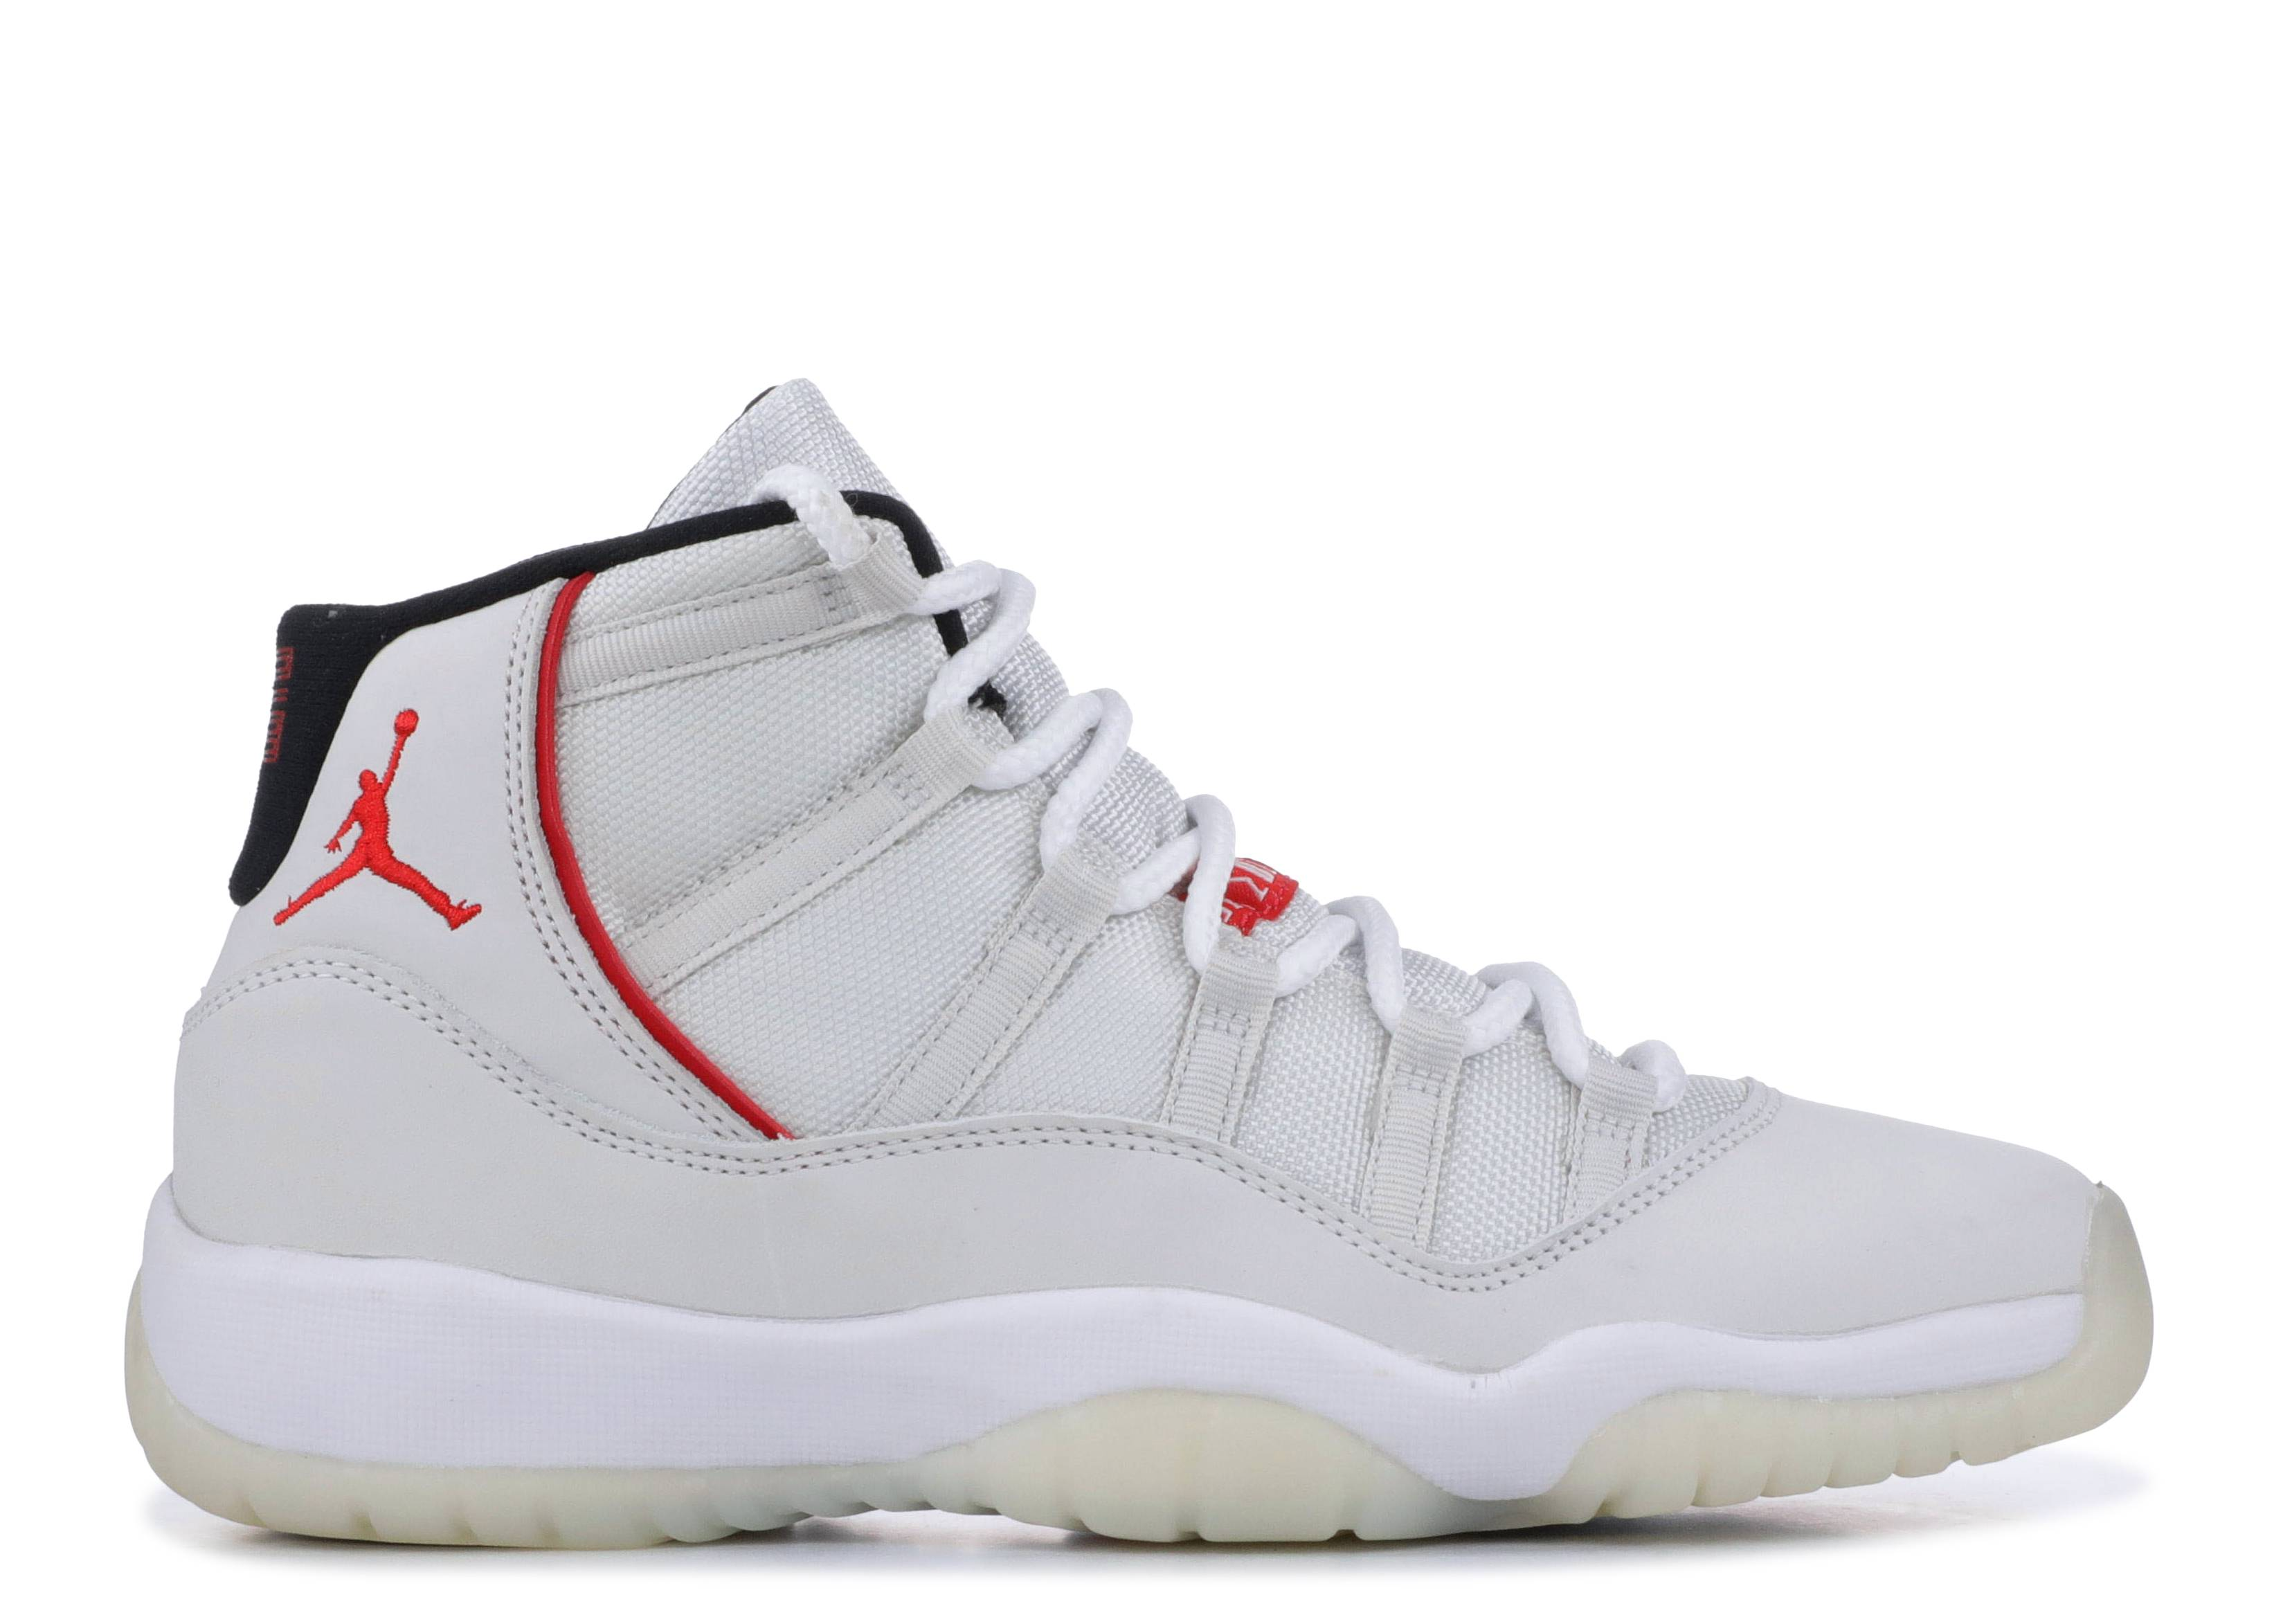 online retailer 87776 b55c1 Air Jordan 11 (XI) Shoes - Nike   Flight Club